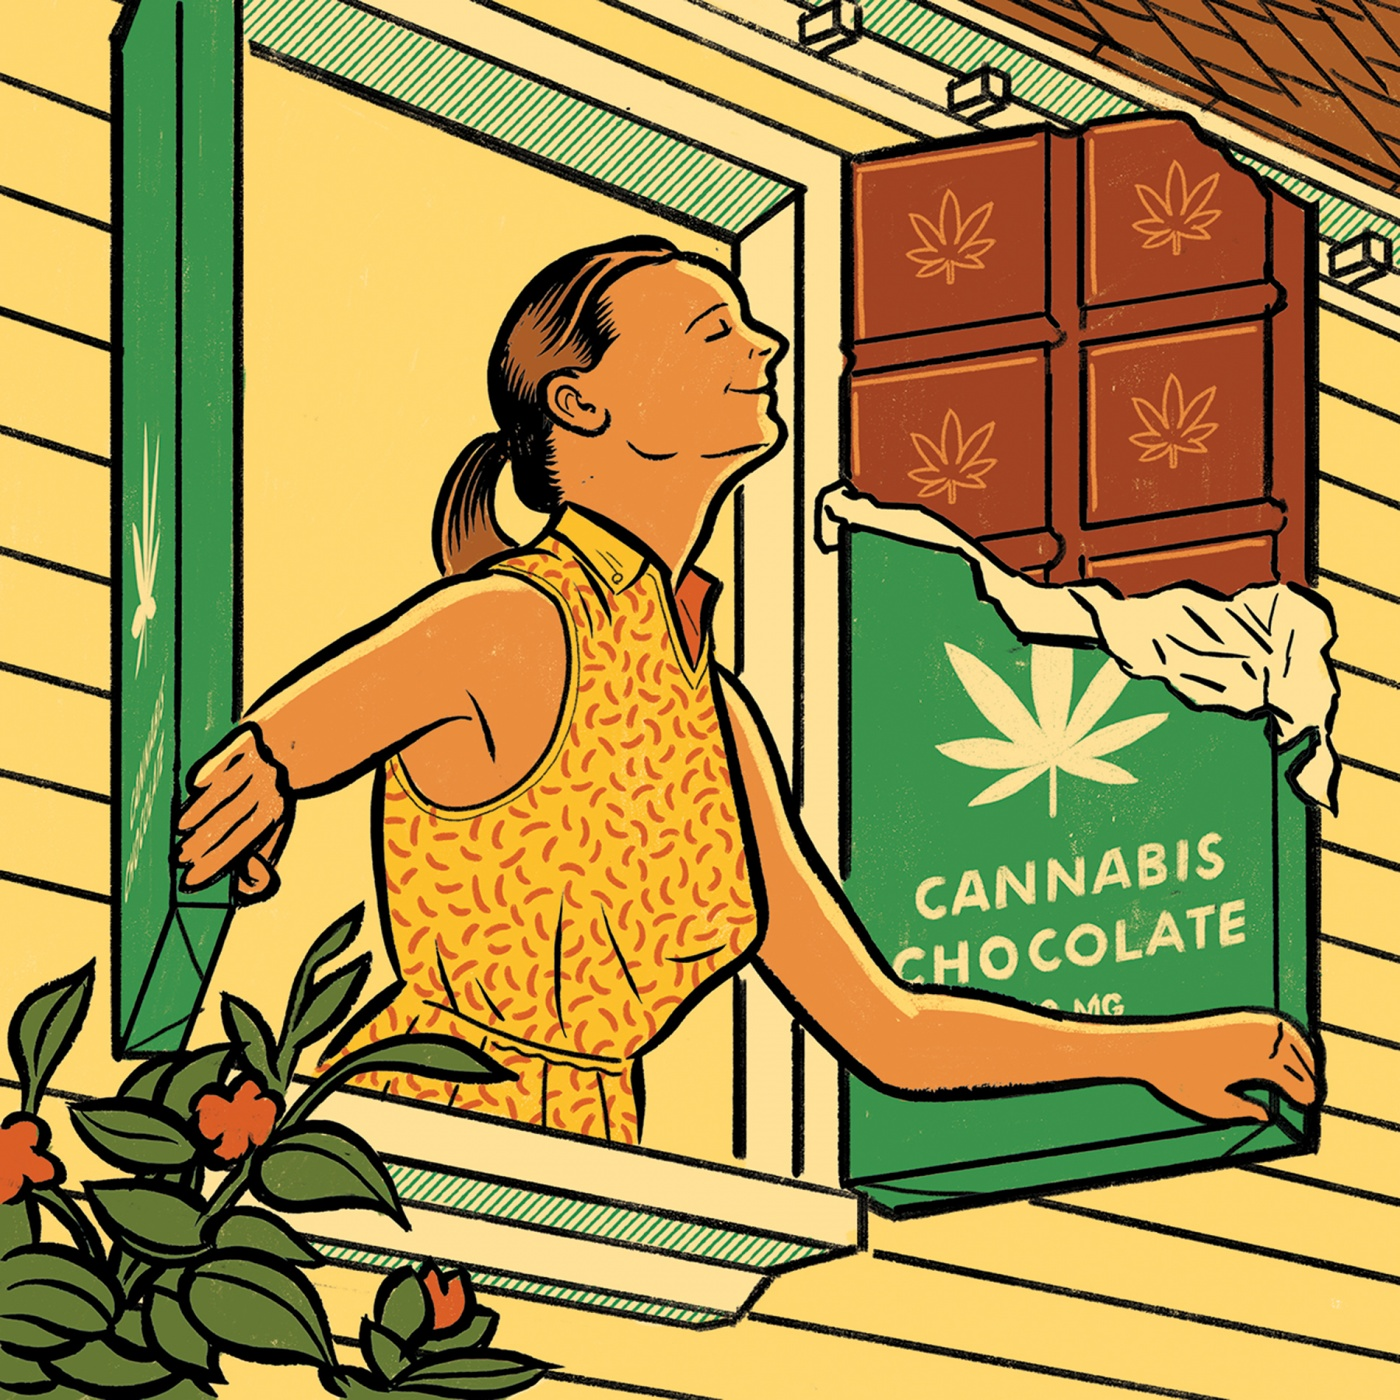 Illustration of a woman enjoying the air from an open window with cannabis chocolate bar shutters